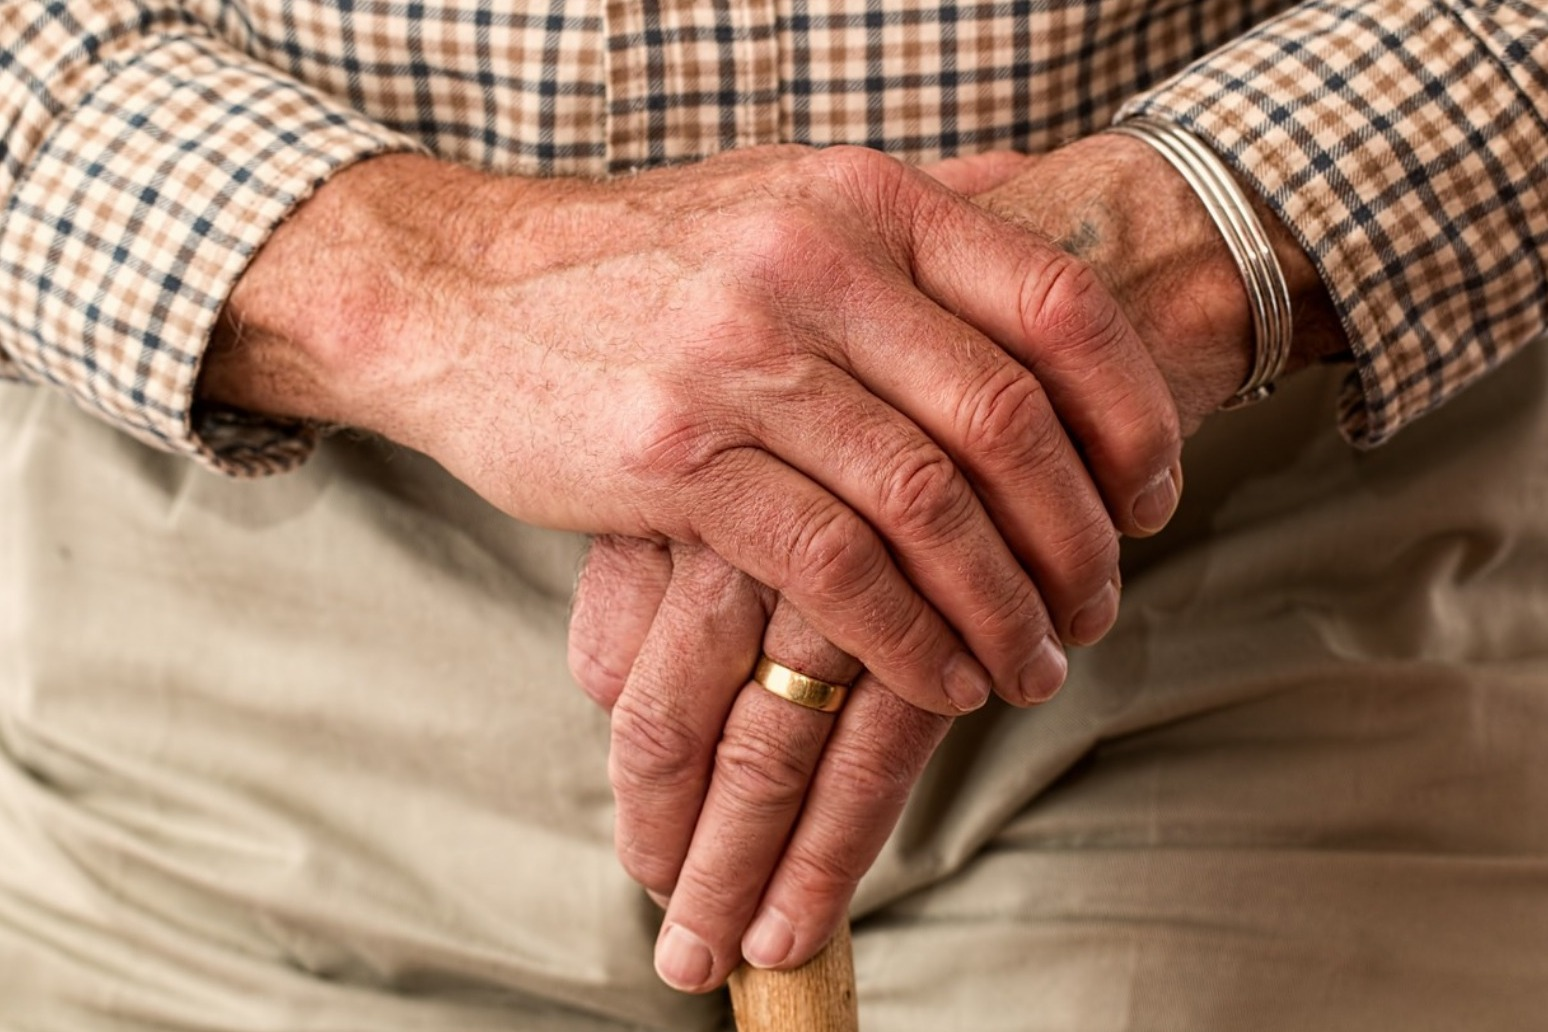 Public sector workers should be given pension opt out option - TPA